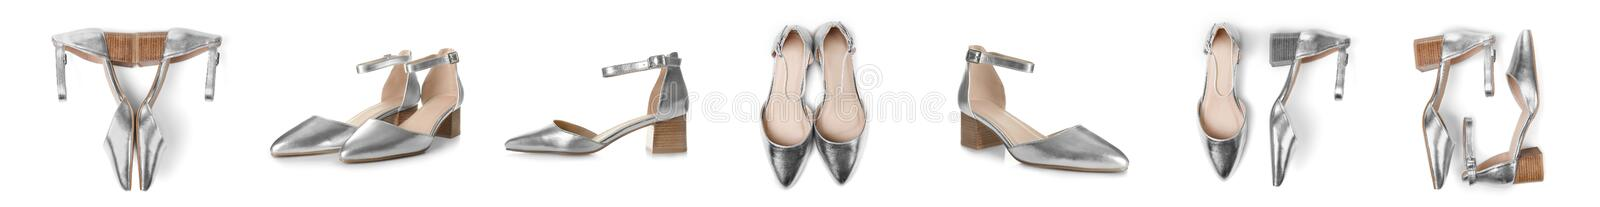 Pair of female shoes stock photography